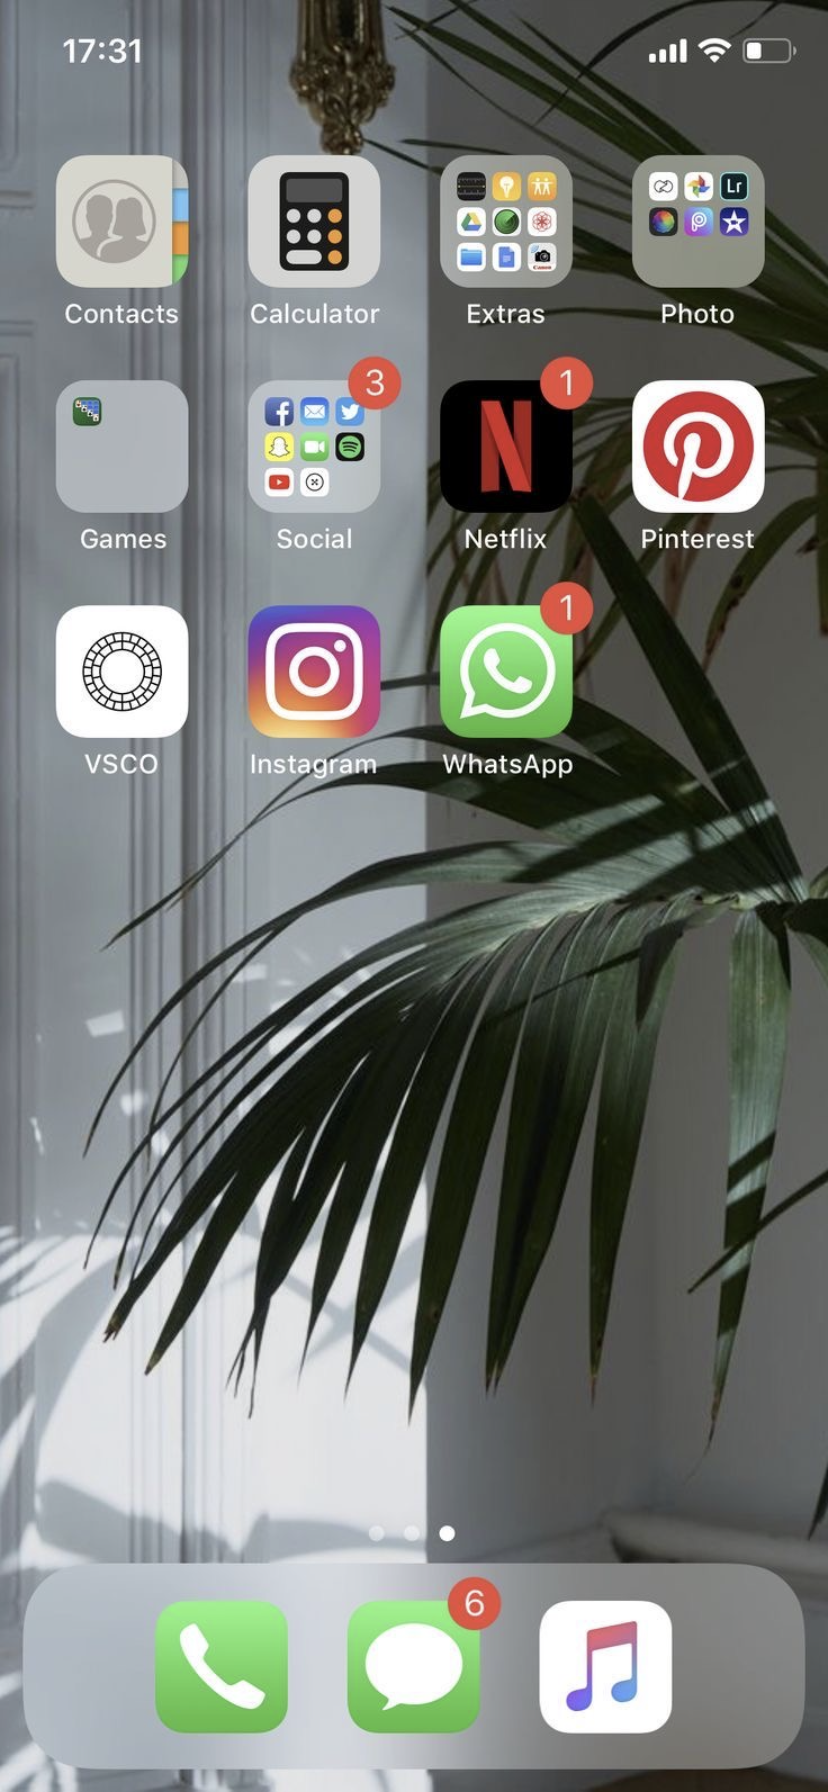 Pin by « meghan » on homescreens in 2020 Iphone app